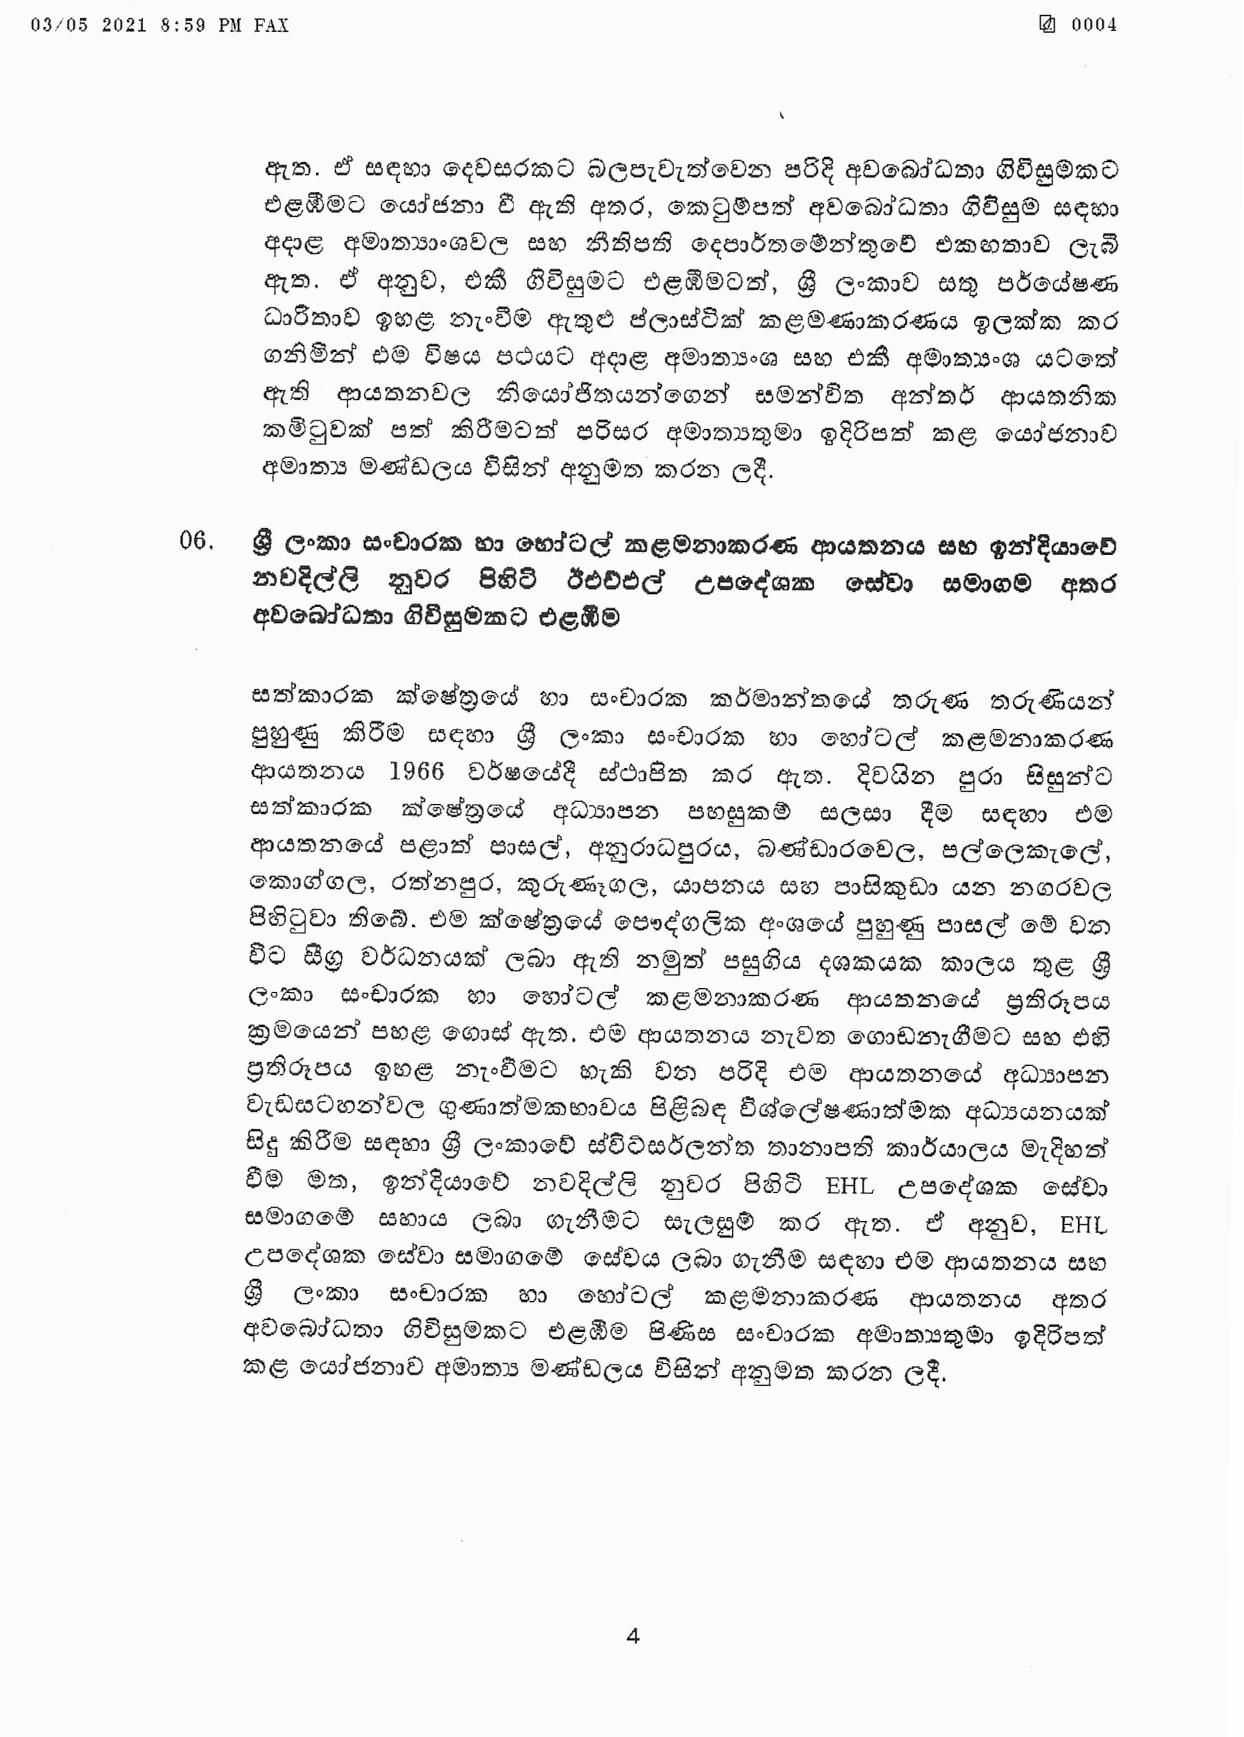 Cabinet Decision on 03.05.2021 page 004